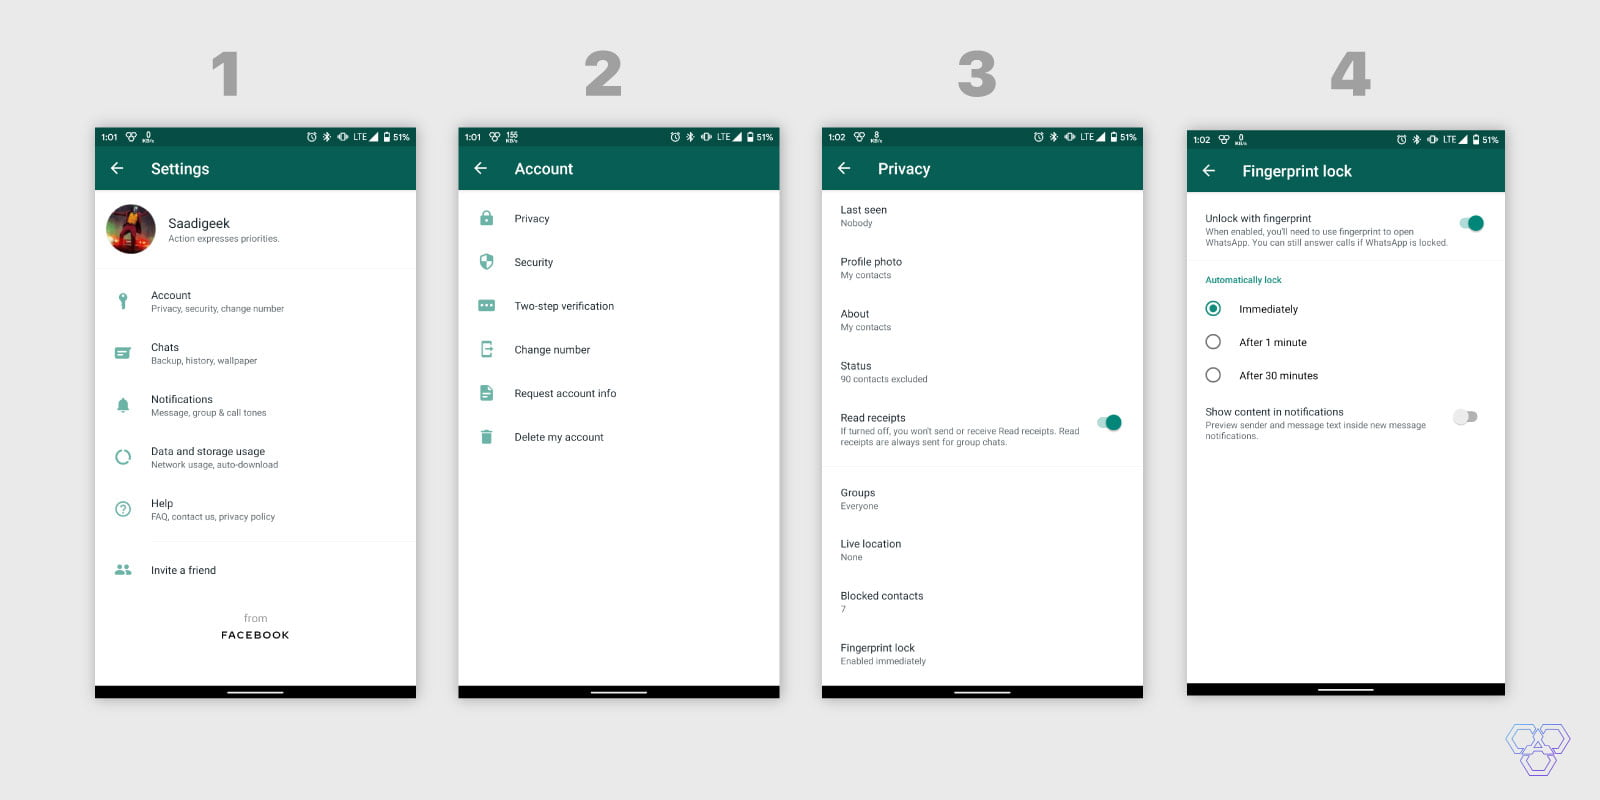 Steps for Android device to enable fingerprint unlock for WhatsApp